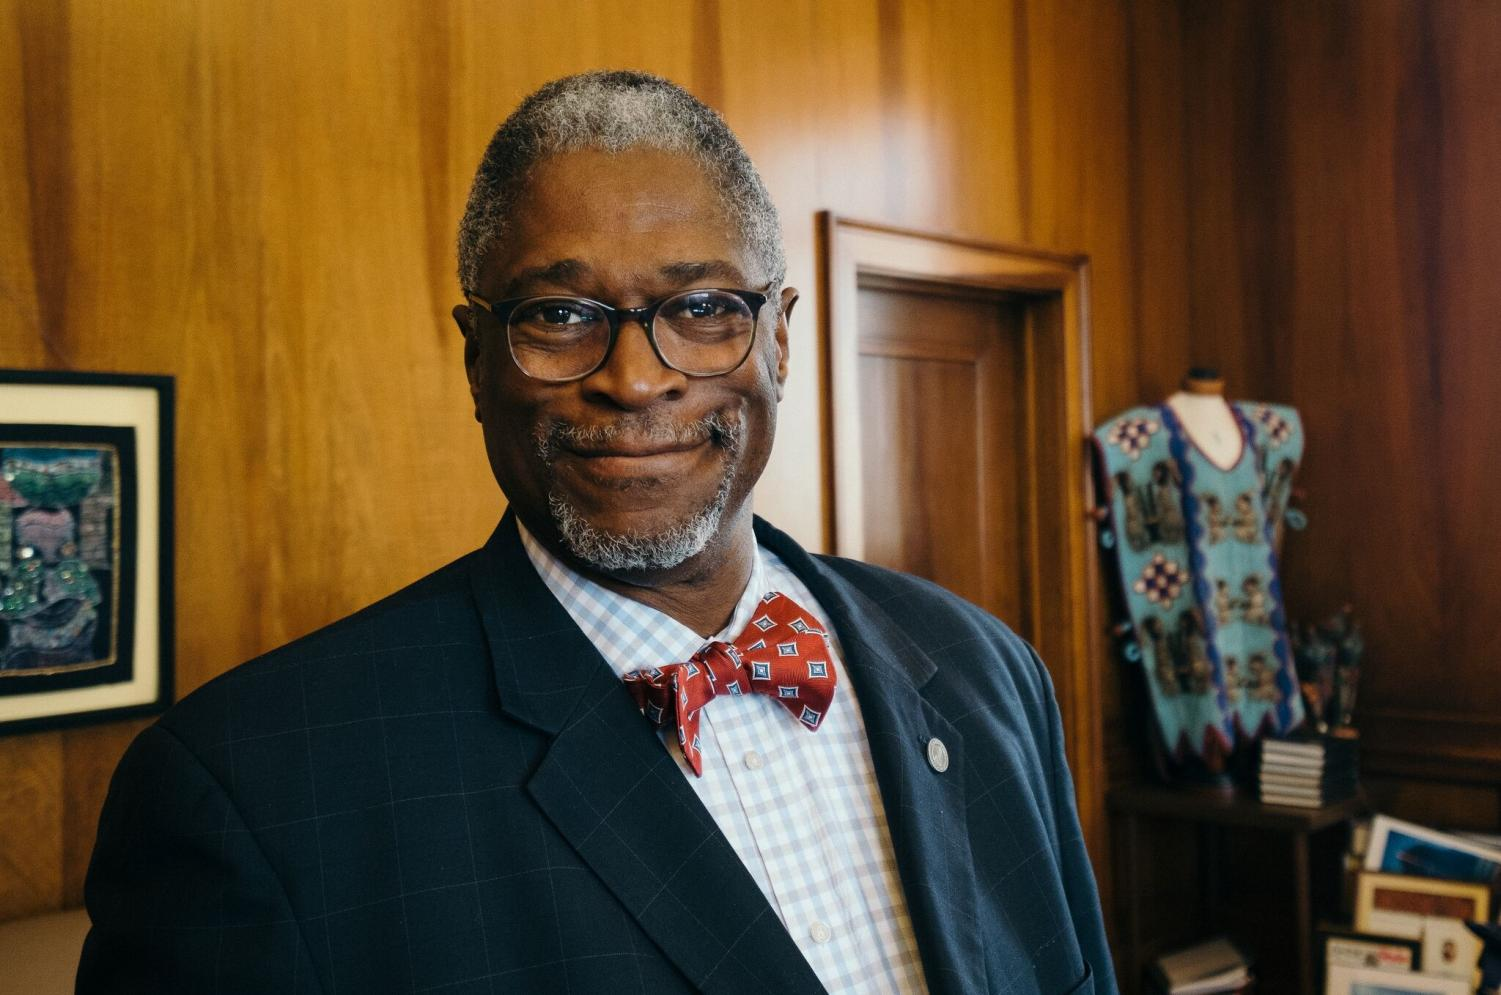 Kansas City, MO mayor Sly James said he believes students are the future and must take part in discussions on gun control.